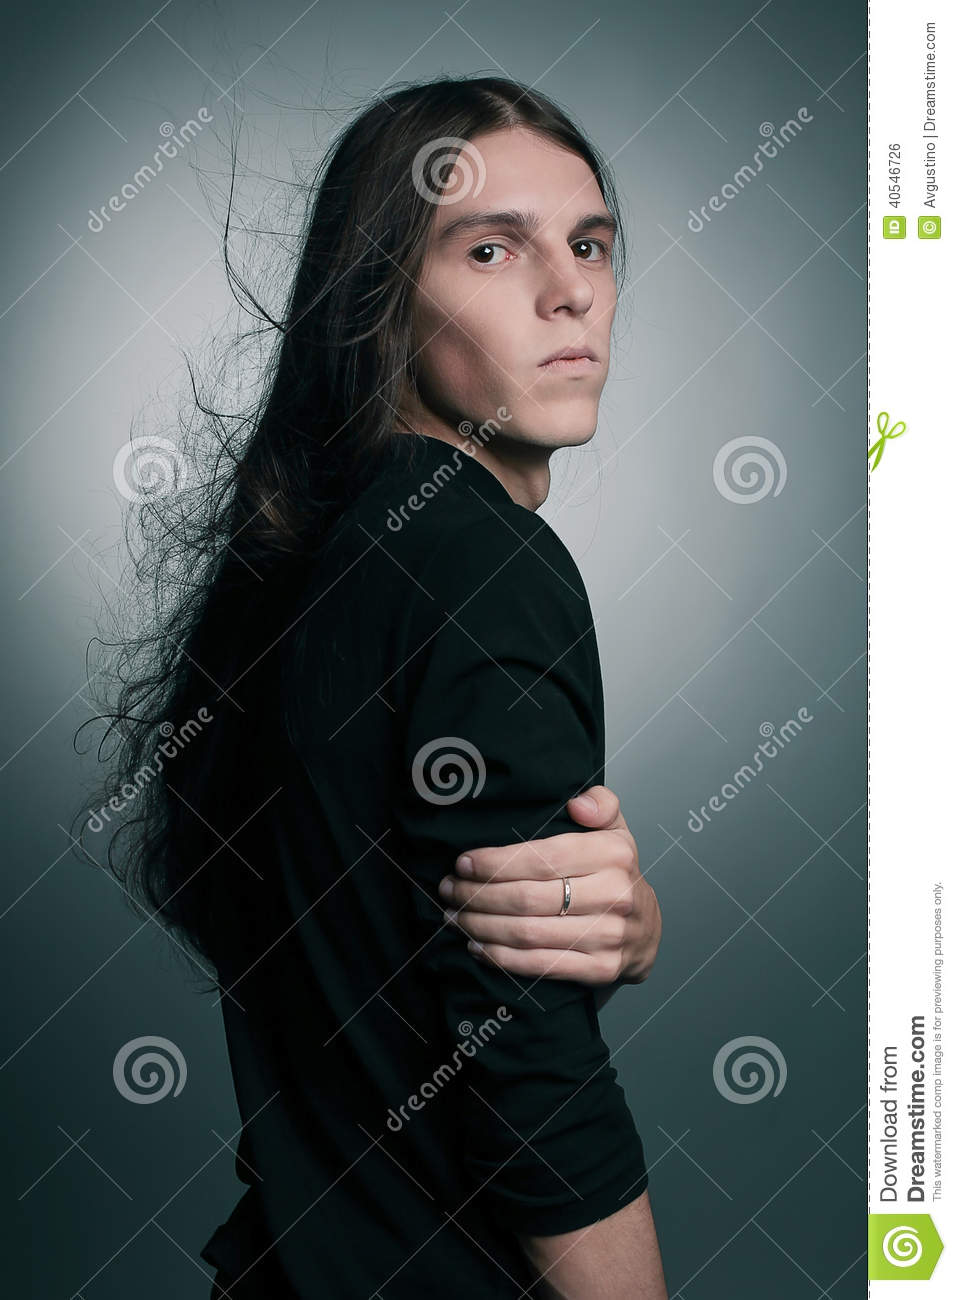 Arty portrait of a fashionable male model with long hair